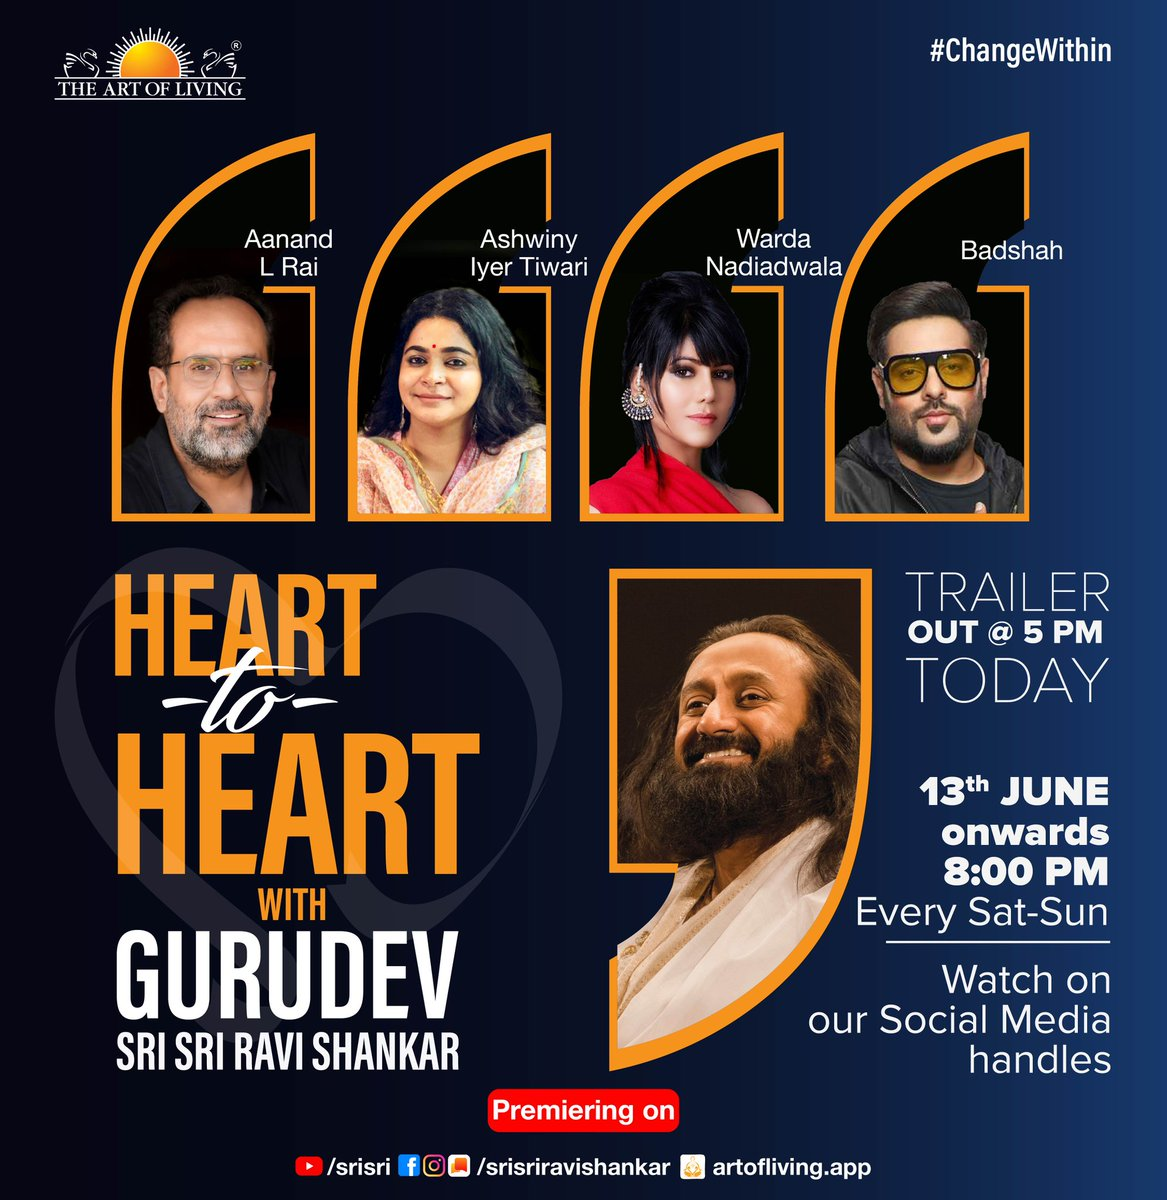 Season 2 of #HeartToHeart with Gurudev @SriSri is here, and we're excited! Coming up this season: @aanandlrai @Its_Badshah @arjunk26 @varunsharma90 @Ashwinyiyer @WardaNadiadwala @iamDivyaKhosla  Trailer's out at 5 PM today. Keep watching this space!